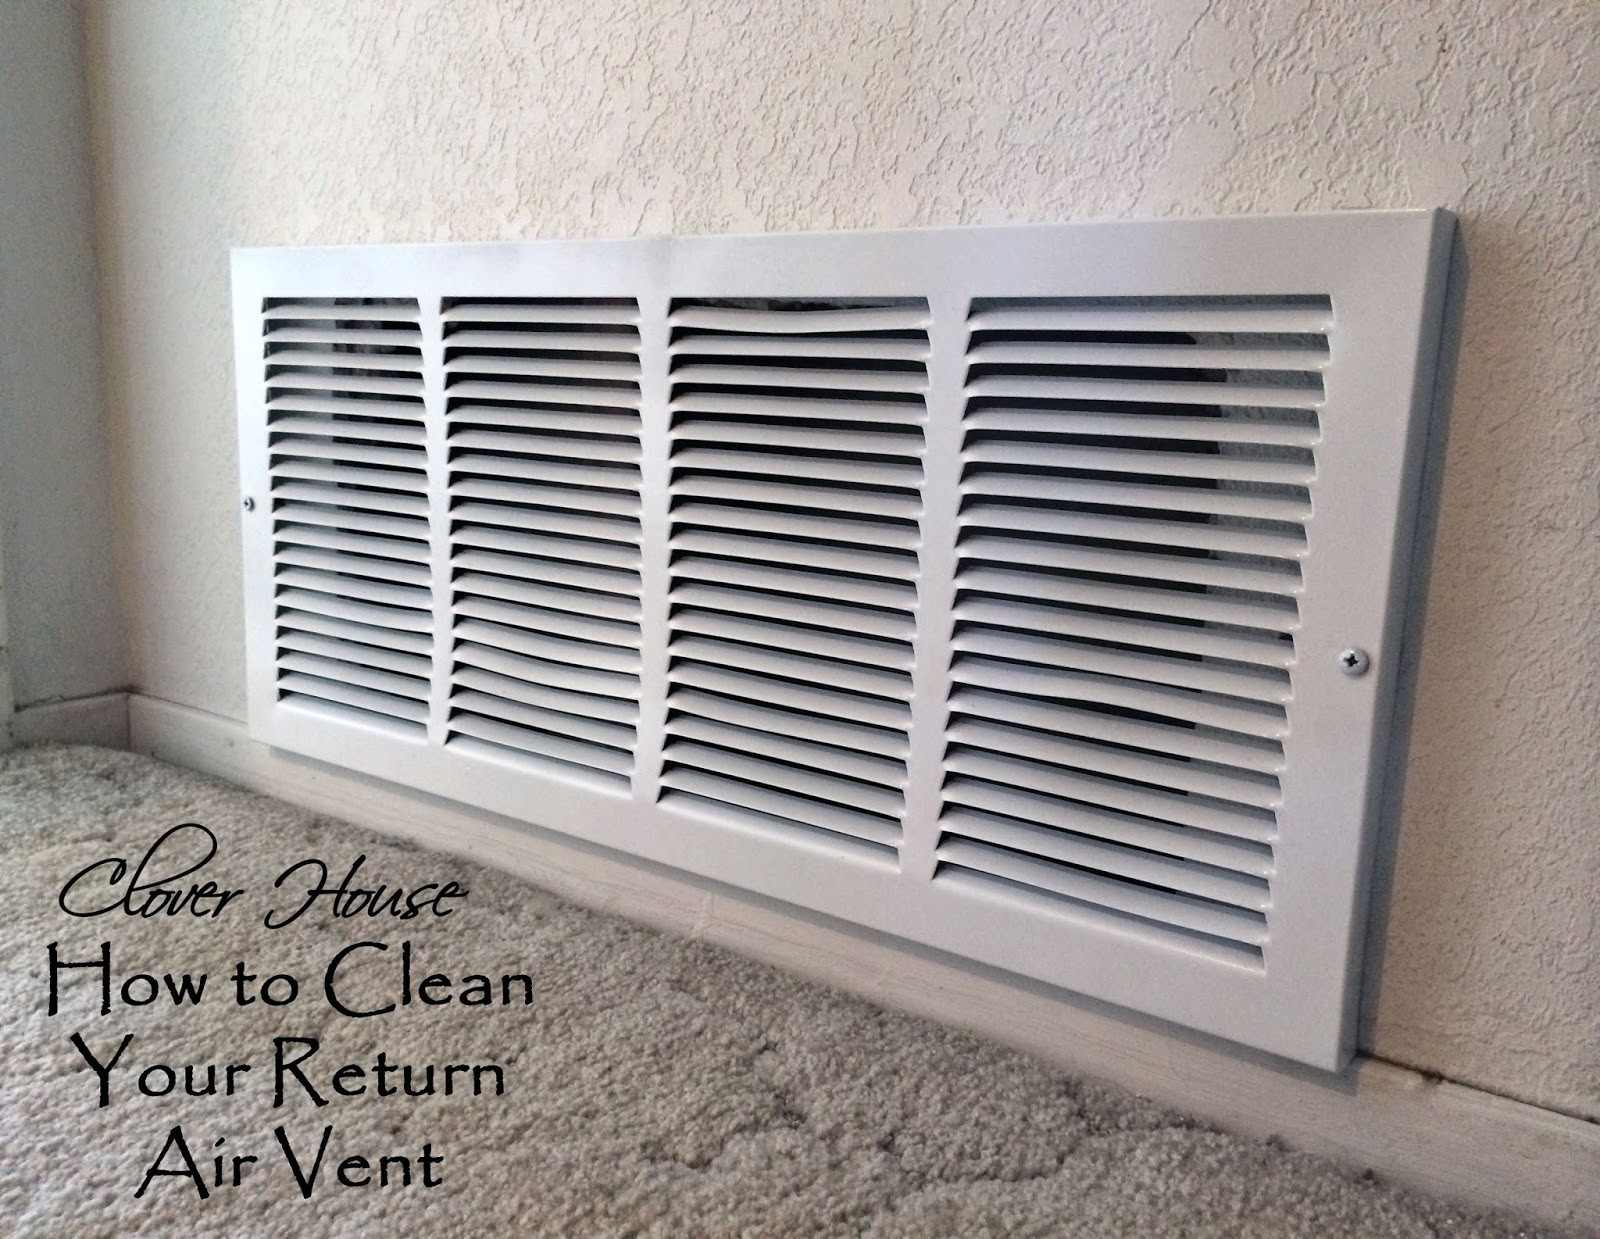 Air Ventilator Home : Clover house how to clean your return air vent